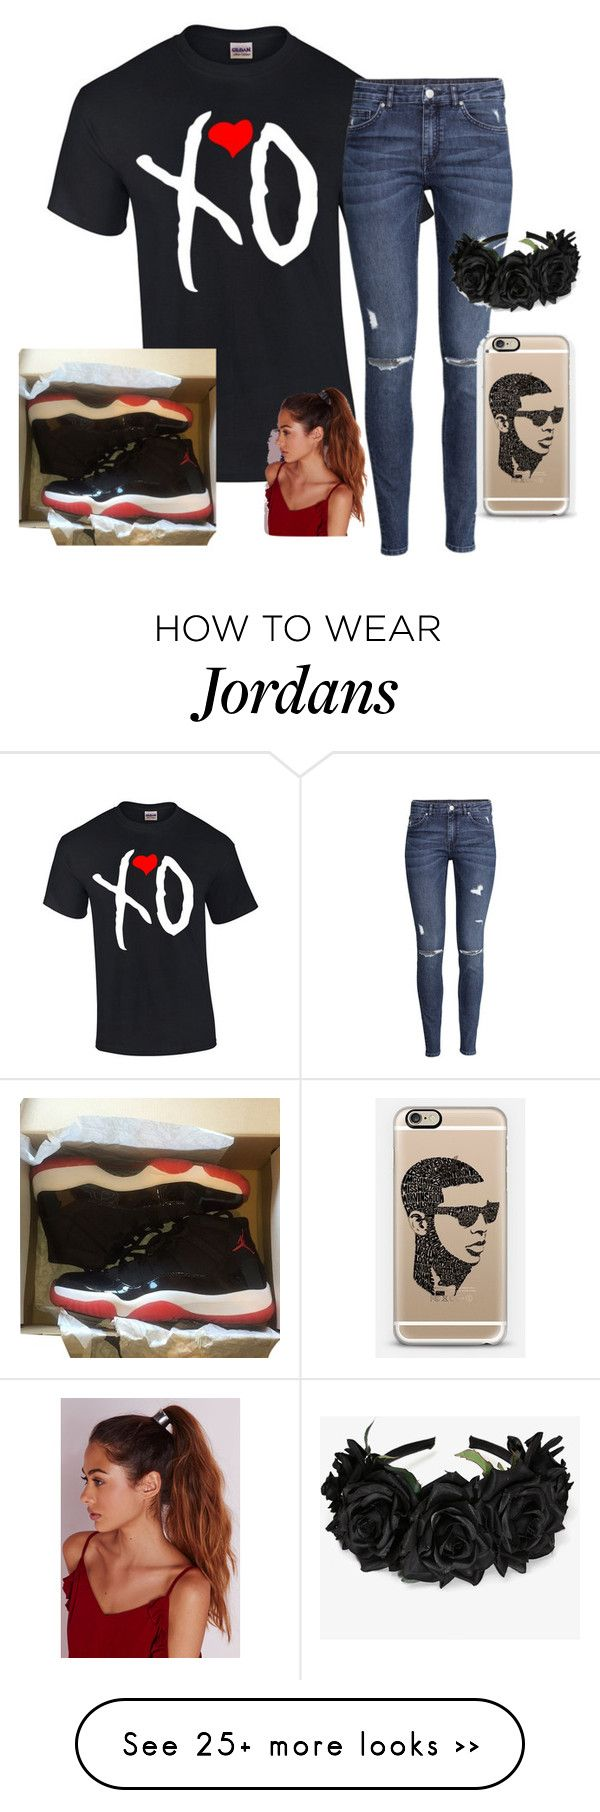 """""""xO"""" by heavenlydiva on Polyvore featuring moda, H&M, NIKE, Casetify y Missguided"""